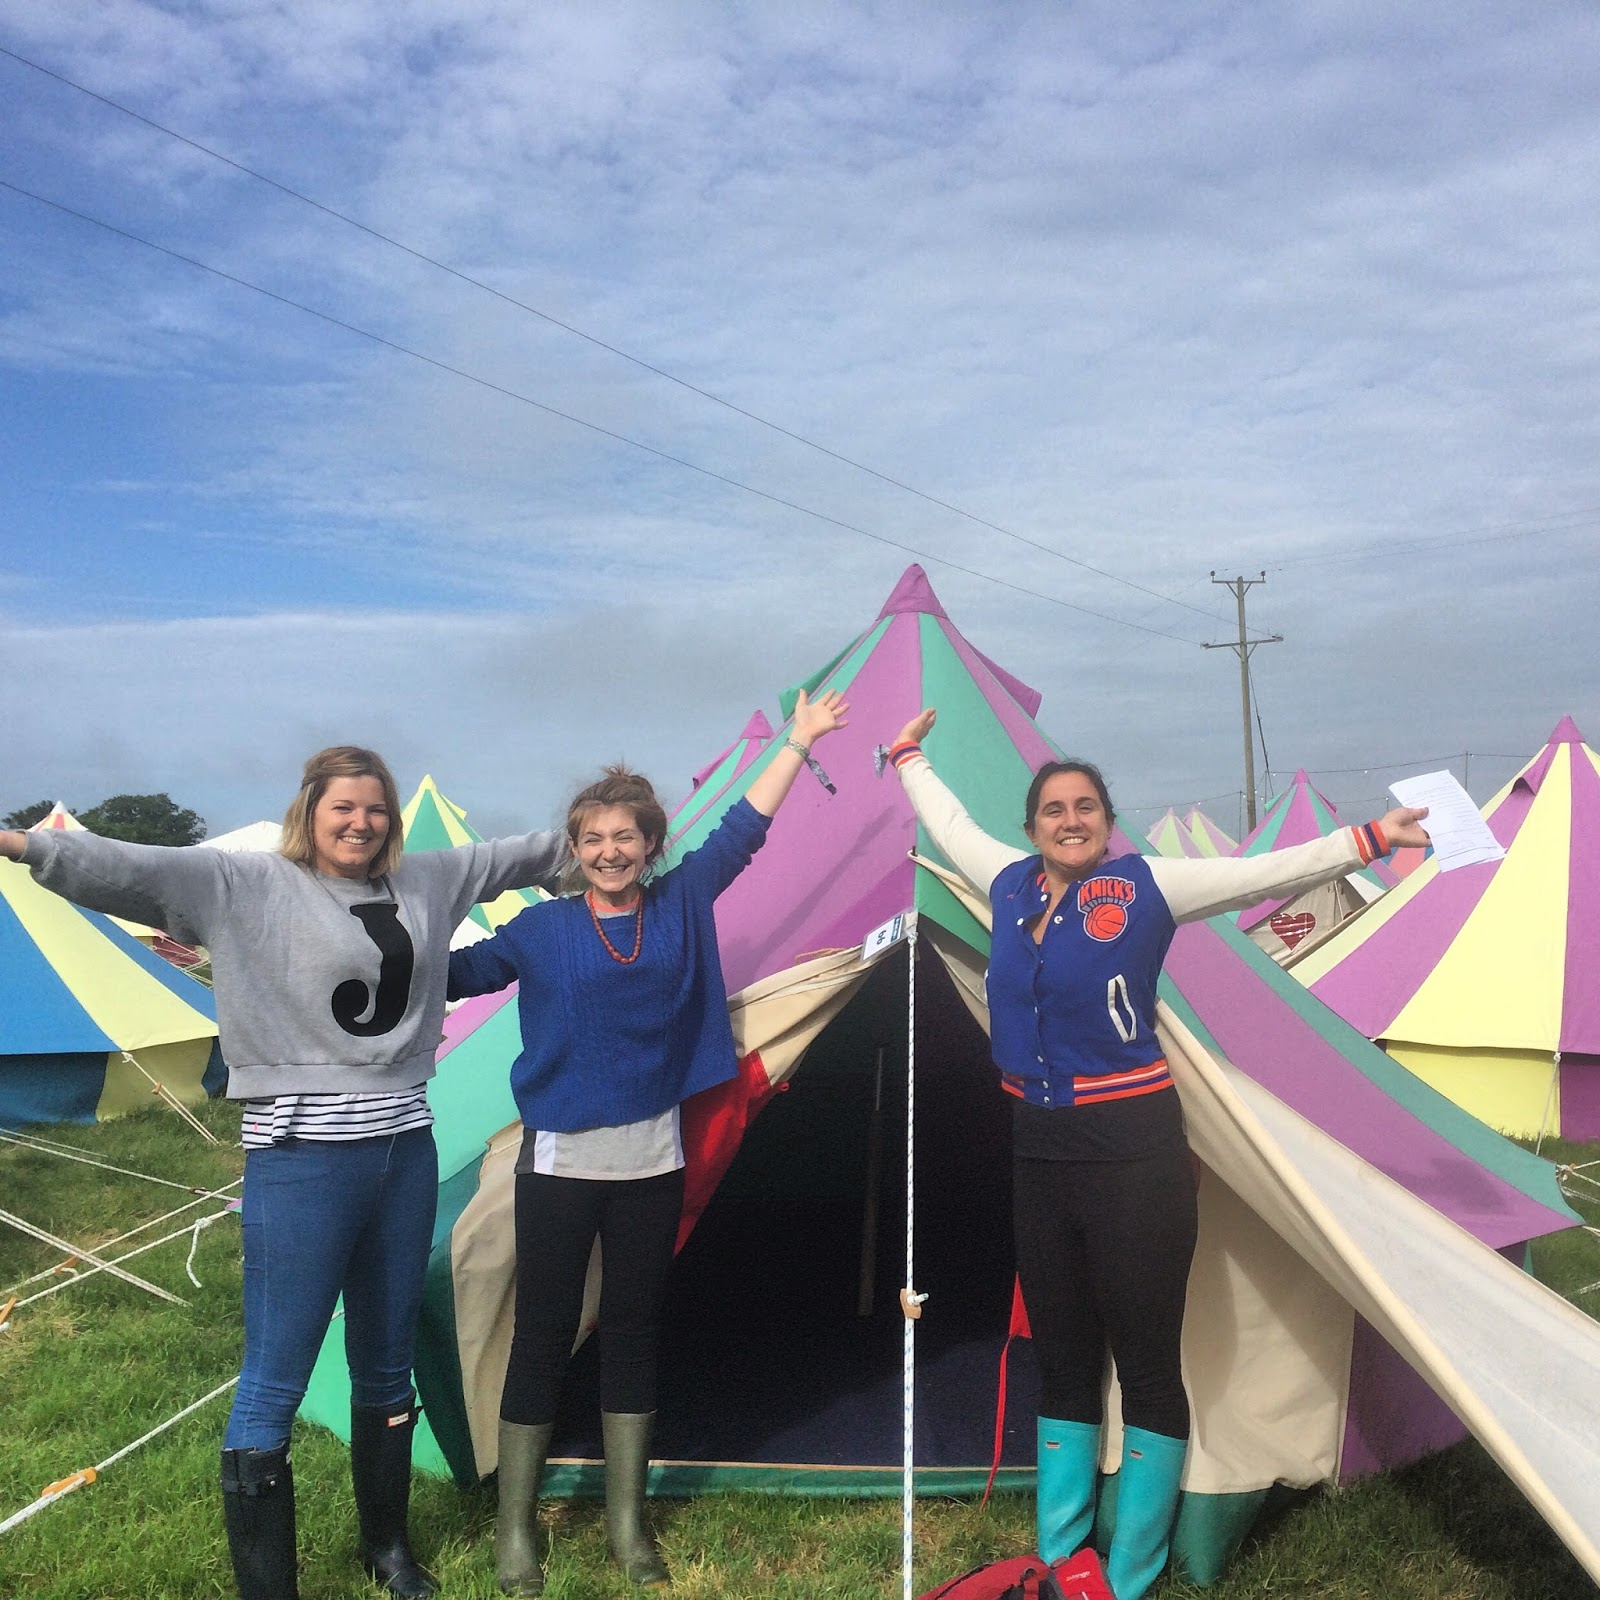 Drunken Love.  sc 1 st  Billie Bhatia & From Fat to Fit: The Glastonbury Guide